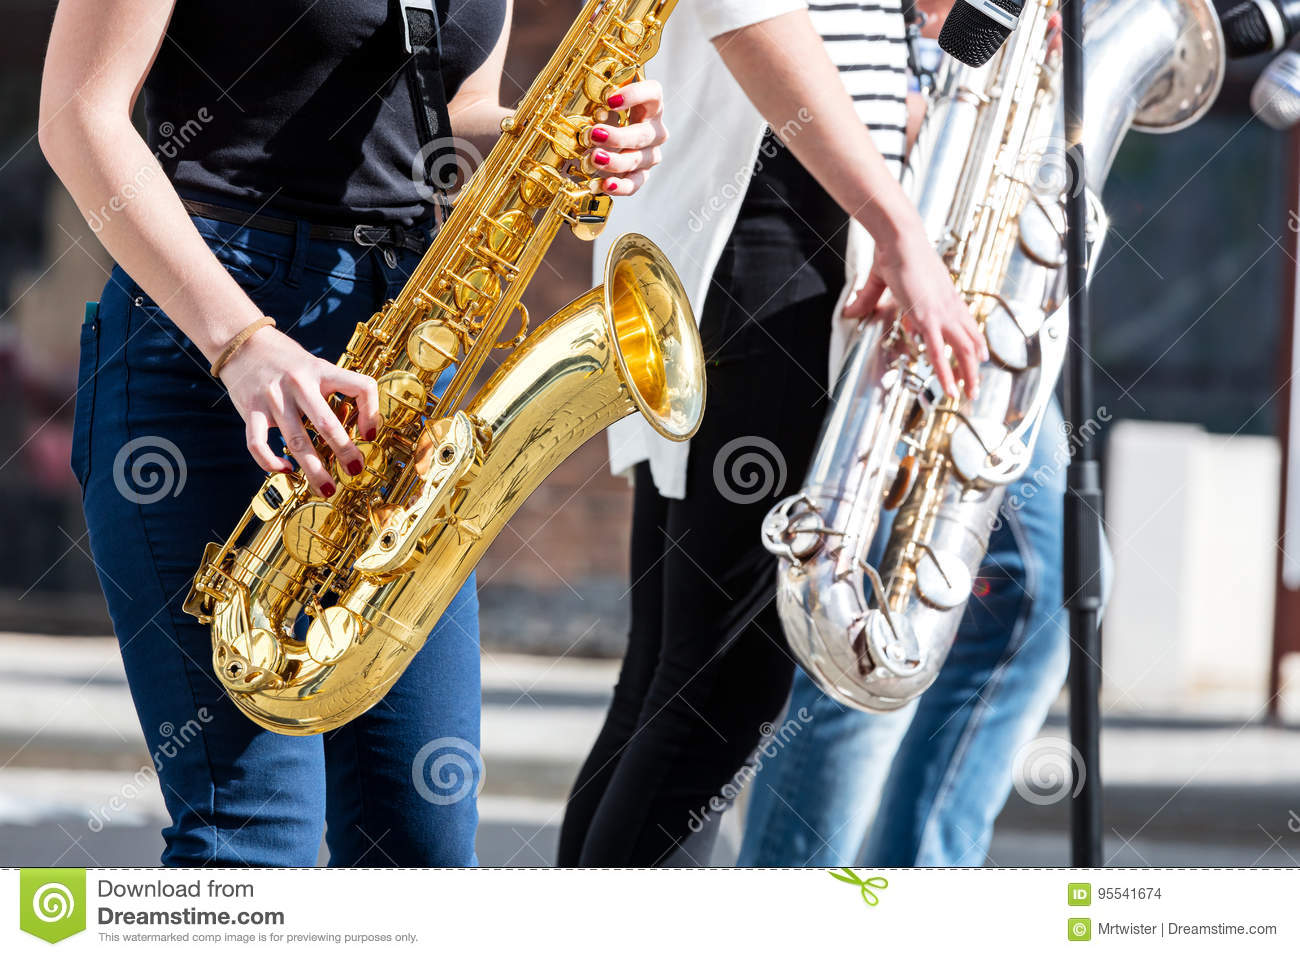 Jazz band of young musicians with saxophones performing during m